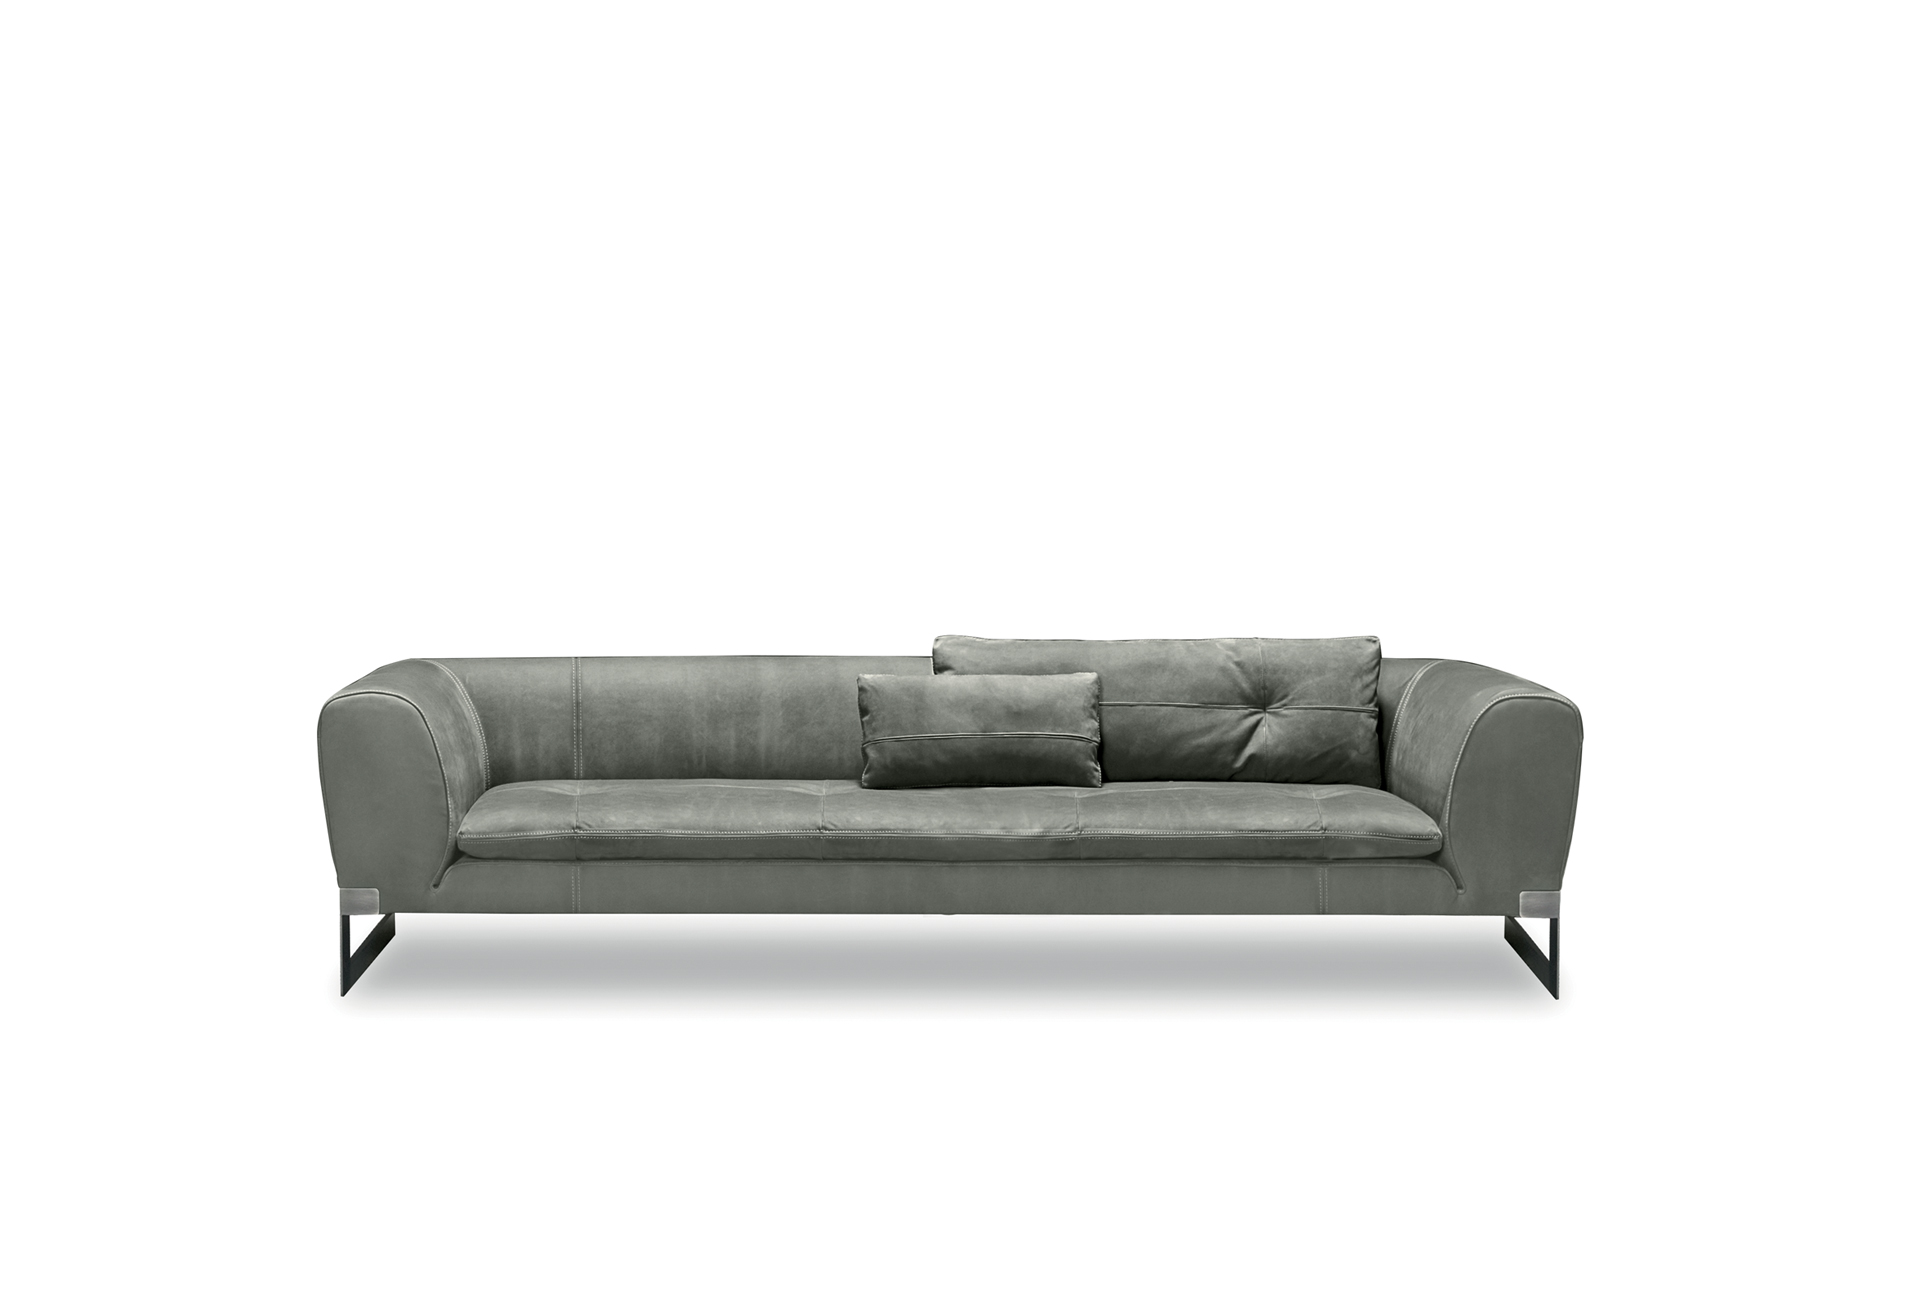 Full Size of Baxter Made In Italy Sofa Furniture Paola Navone Jonathan Adler Italia Budapest Couch Ez Living Housse Chester Moon Viktor Preis Harvey Norman Leather Sofa Baxter Sofa